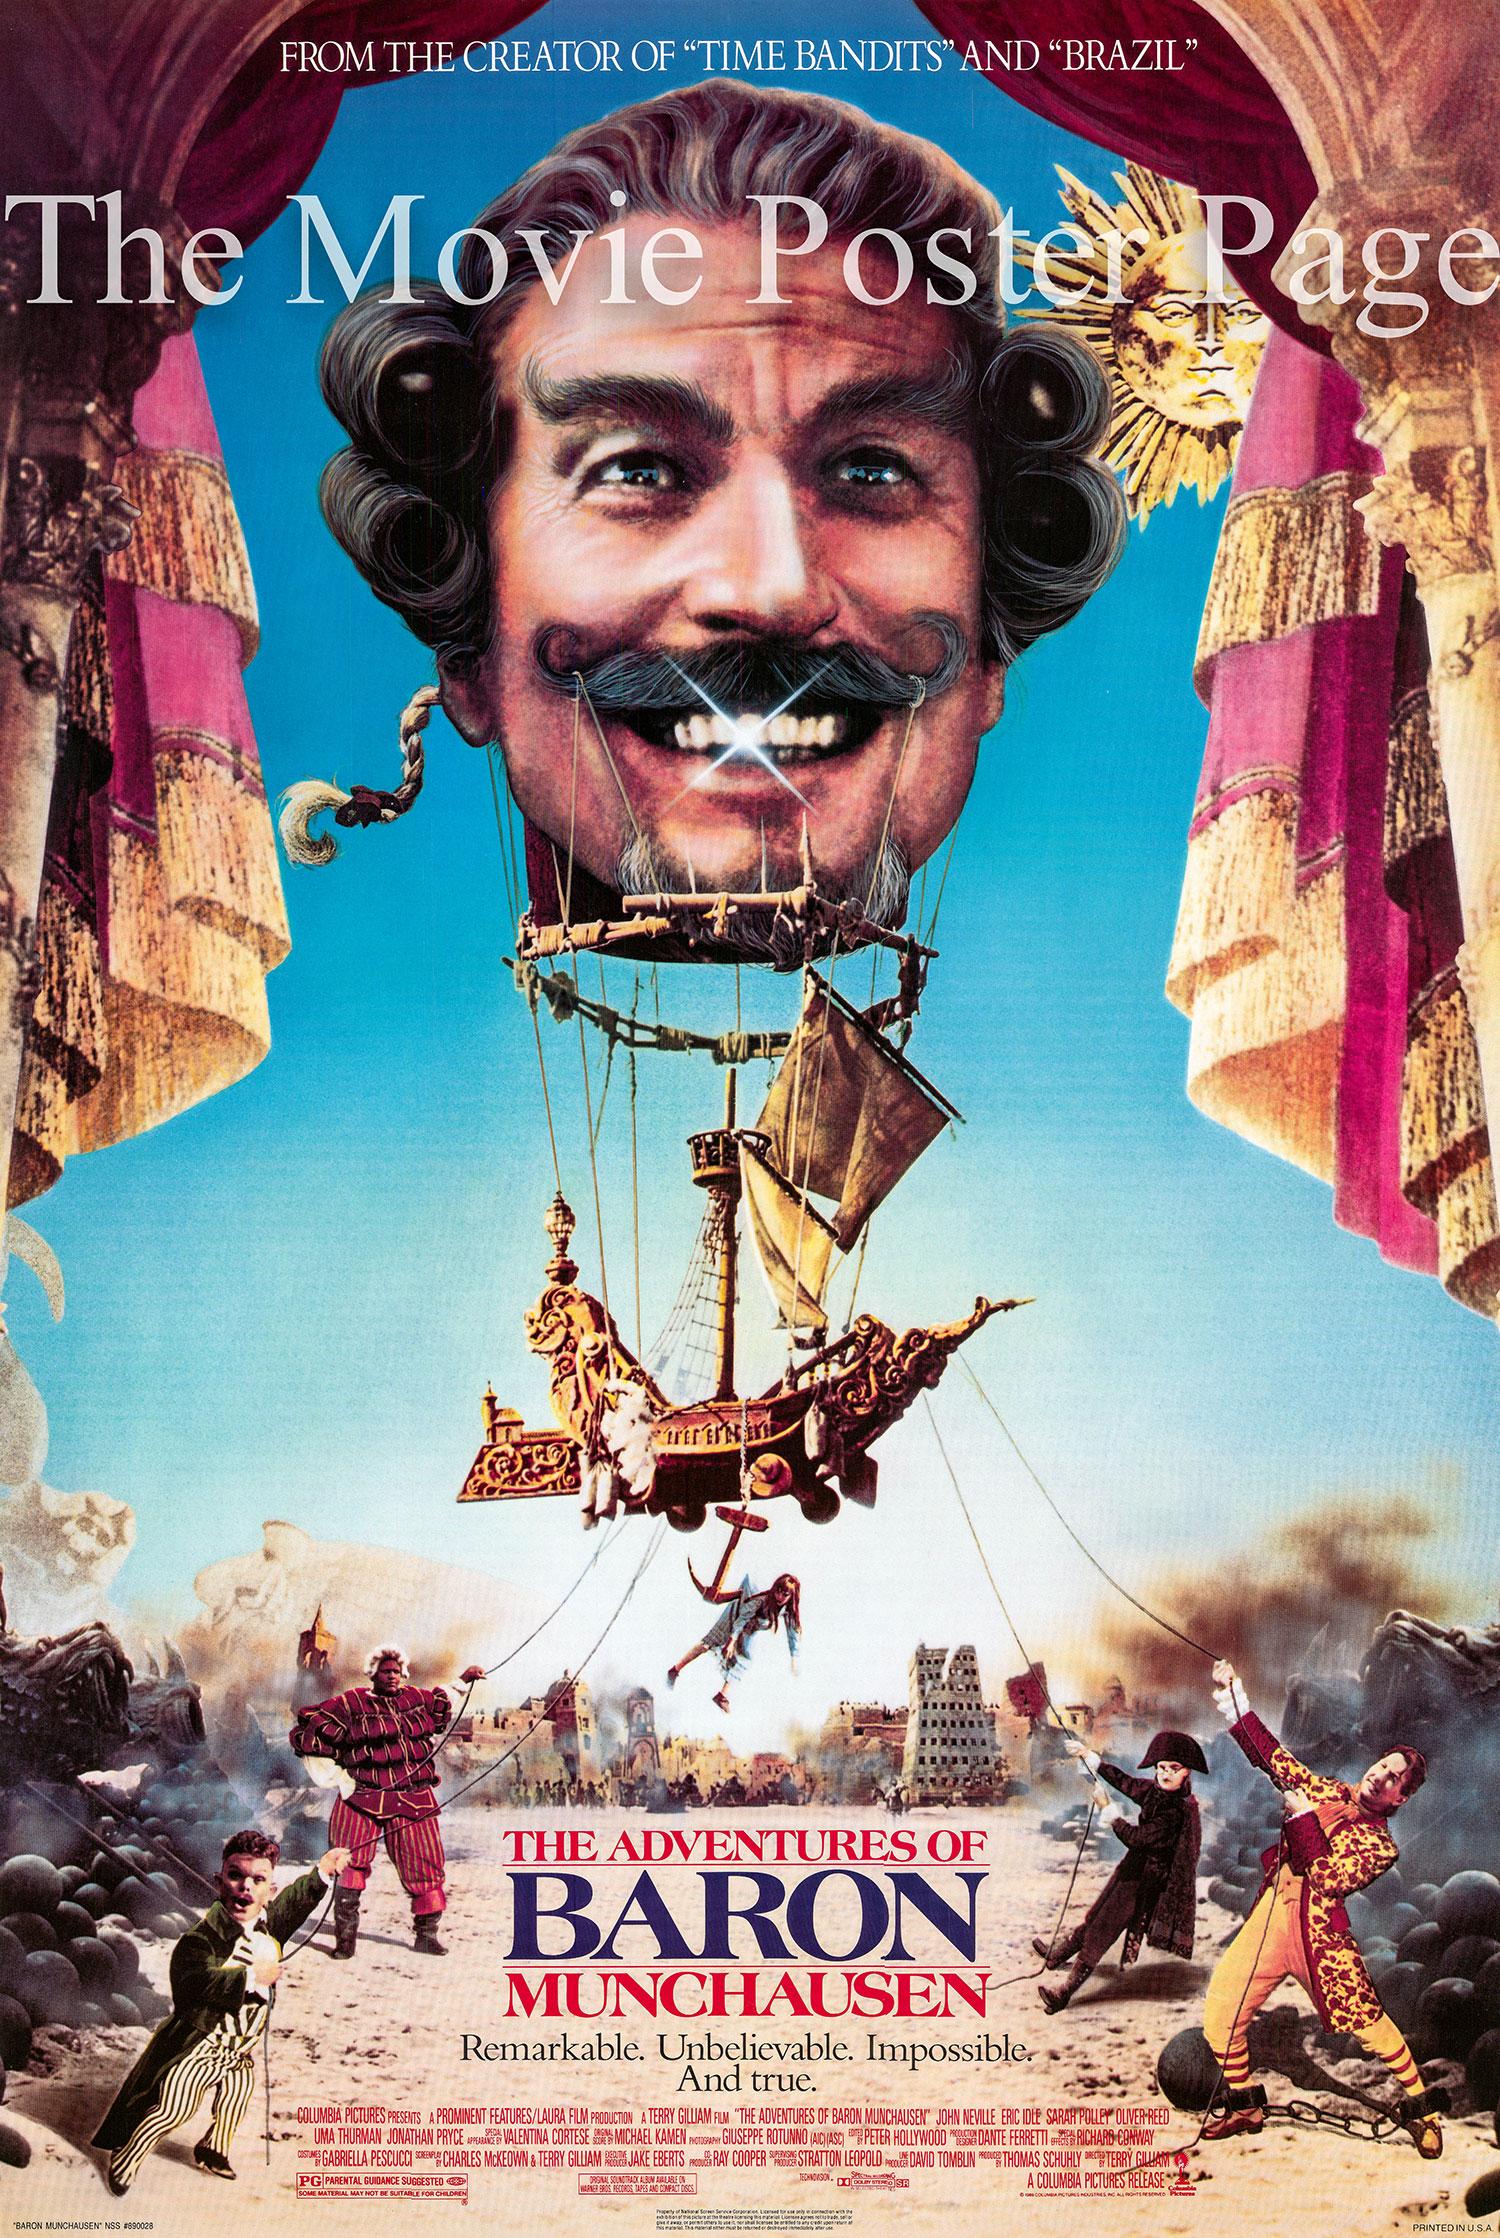 Pictured is a US one-sheet promotional poster for the 1989 Terry Gilliam film The Adventures of Baron Munchausen starring John Neville as the baron.